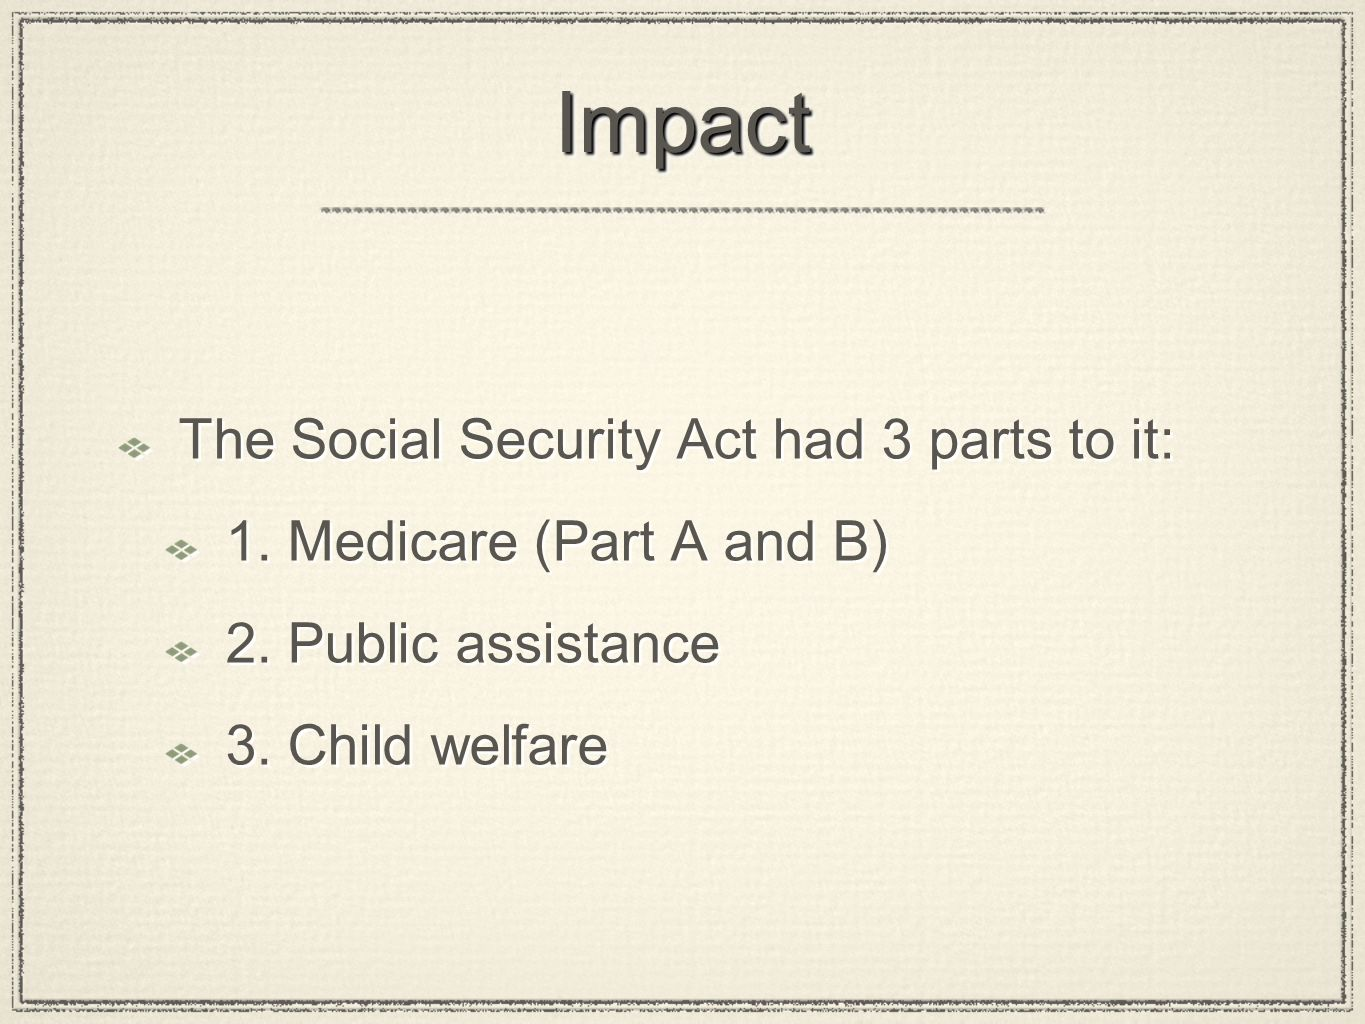 ImpactImpact The Social Security Act had 3 parts to it: 1.